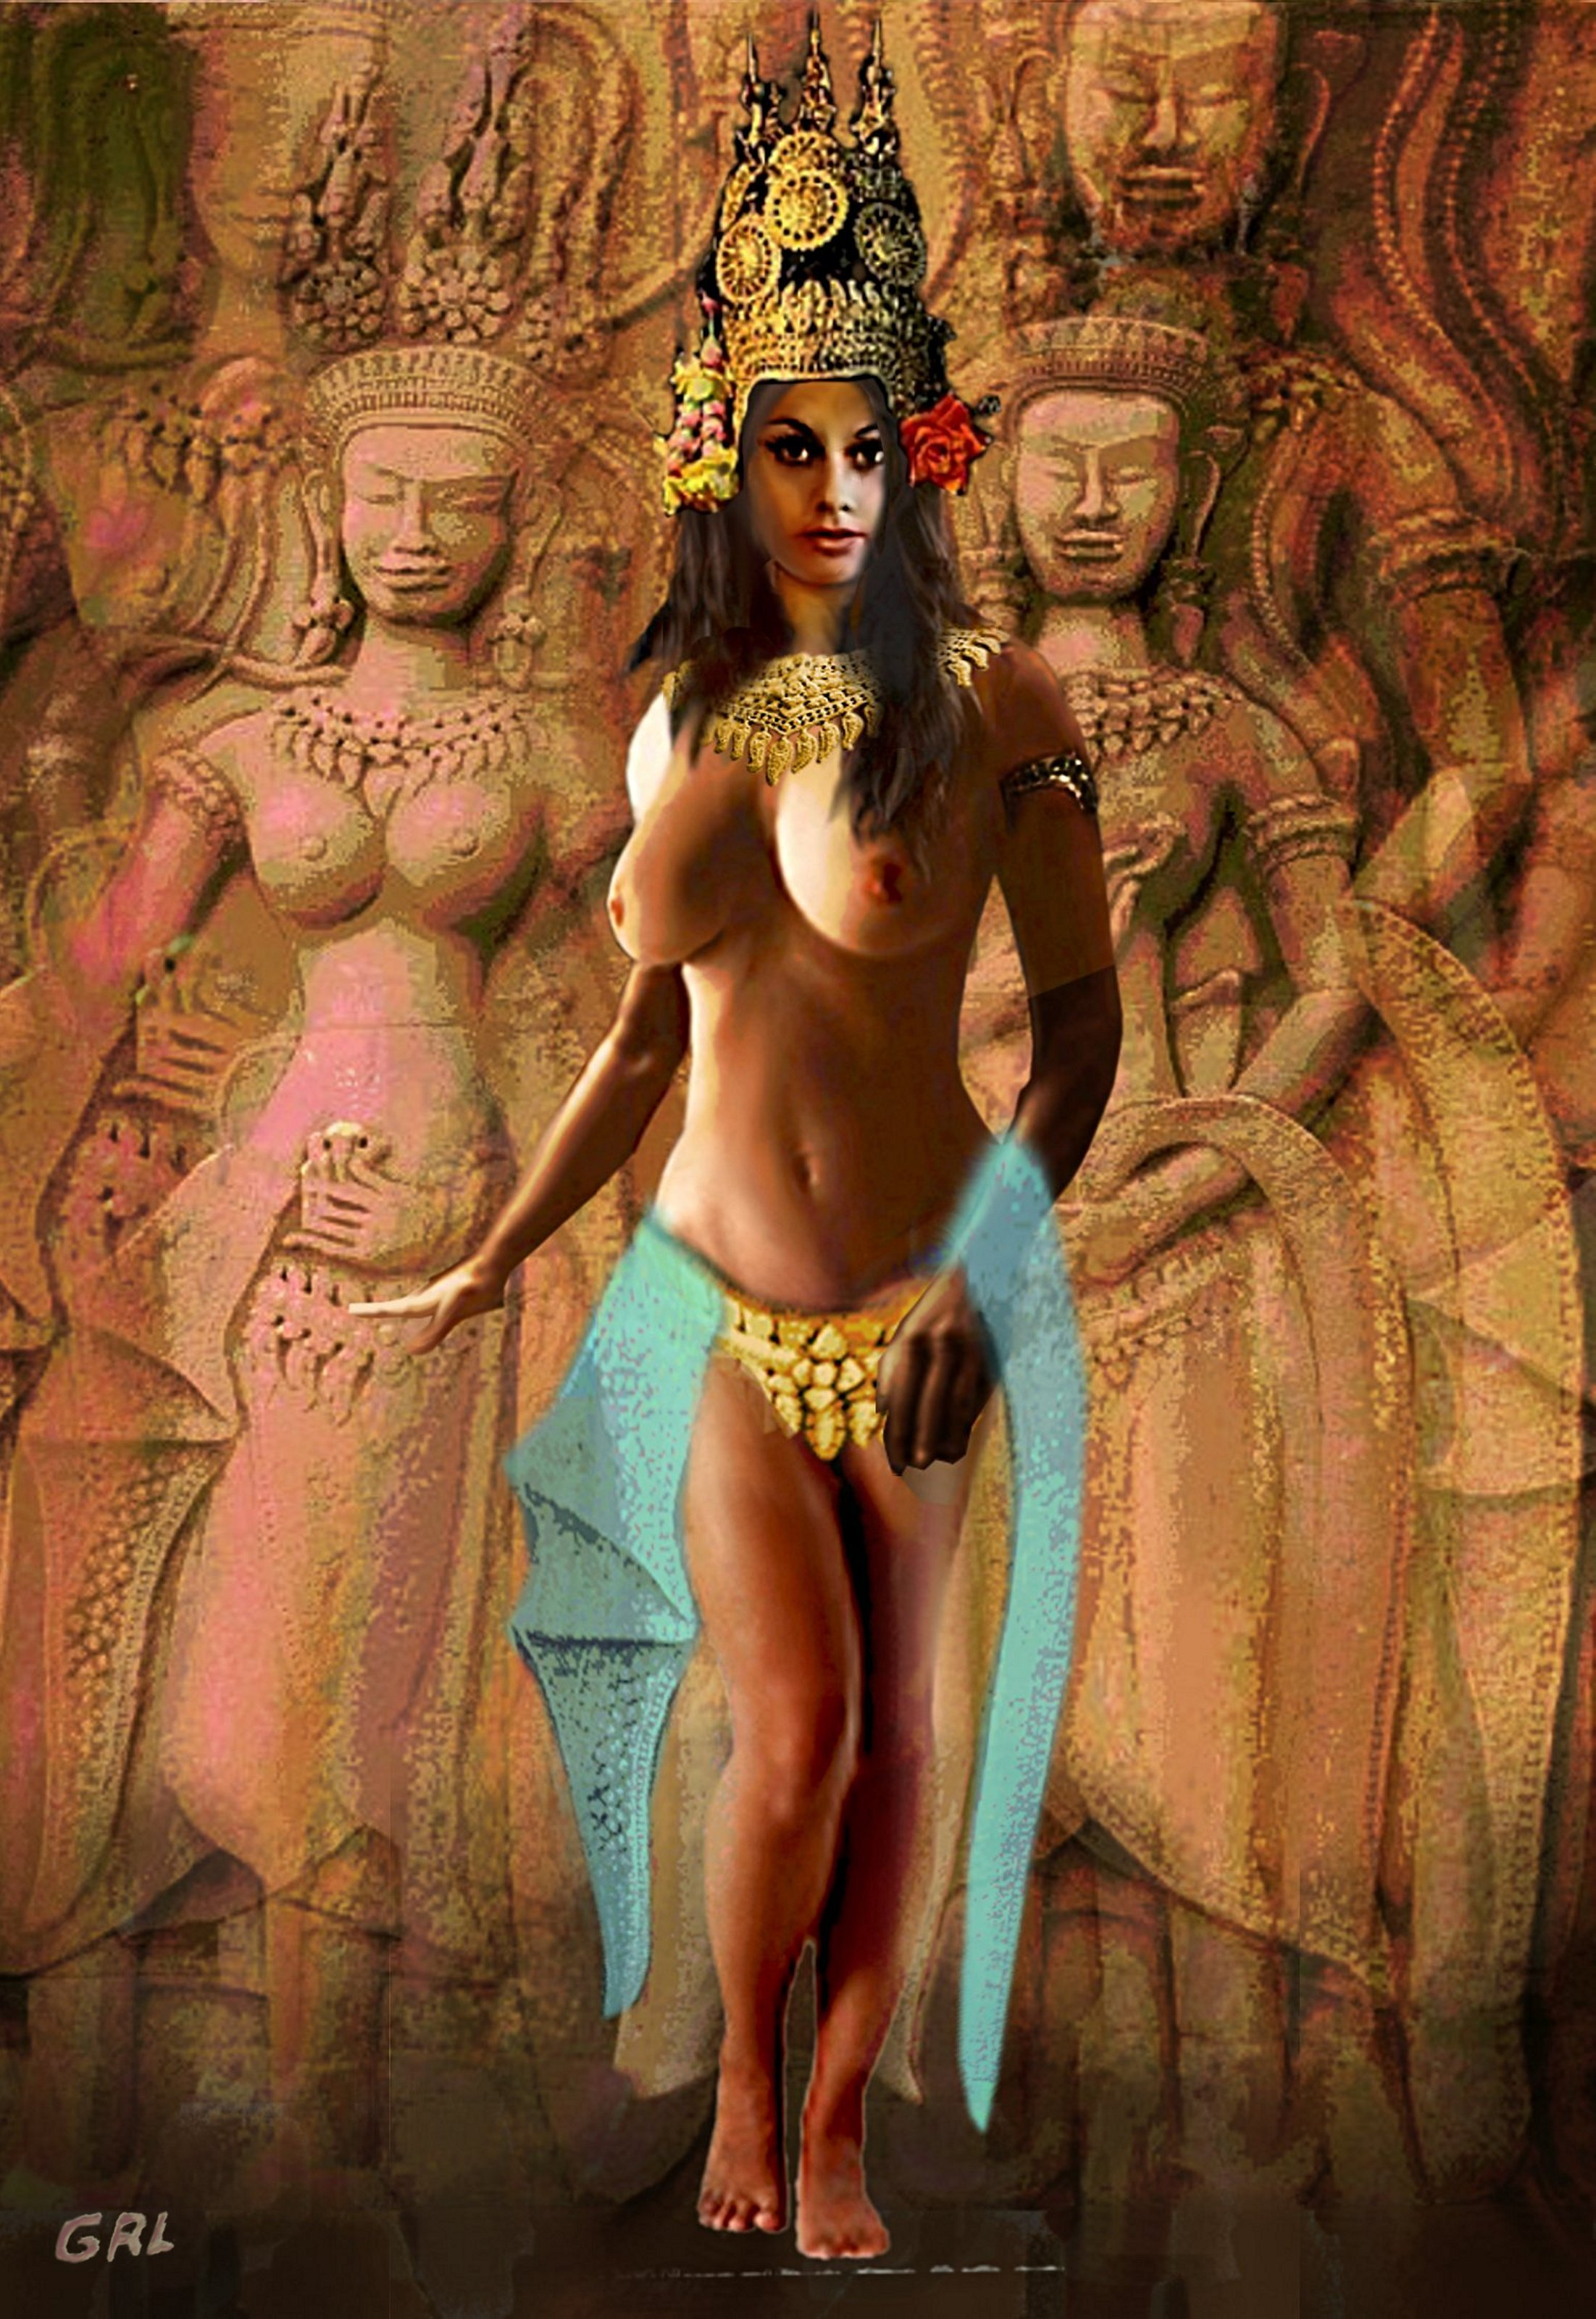 G. Ross Linsenmayer Artwork: ORIGINAL DIGITAL ART FEMALE ...